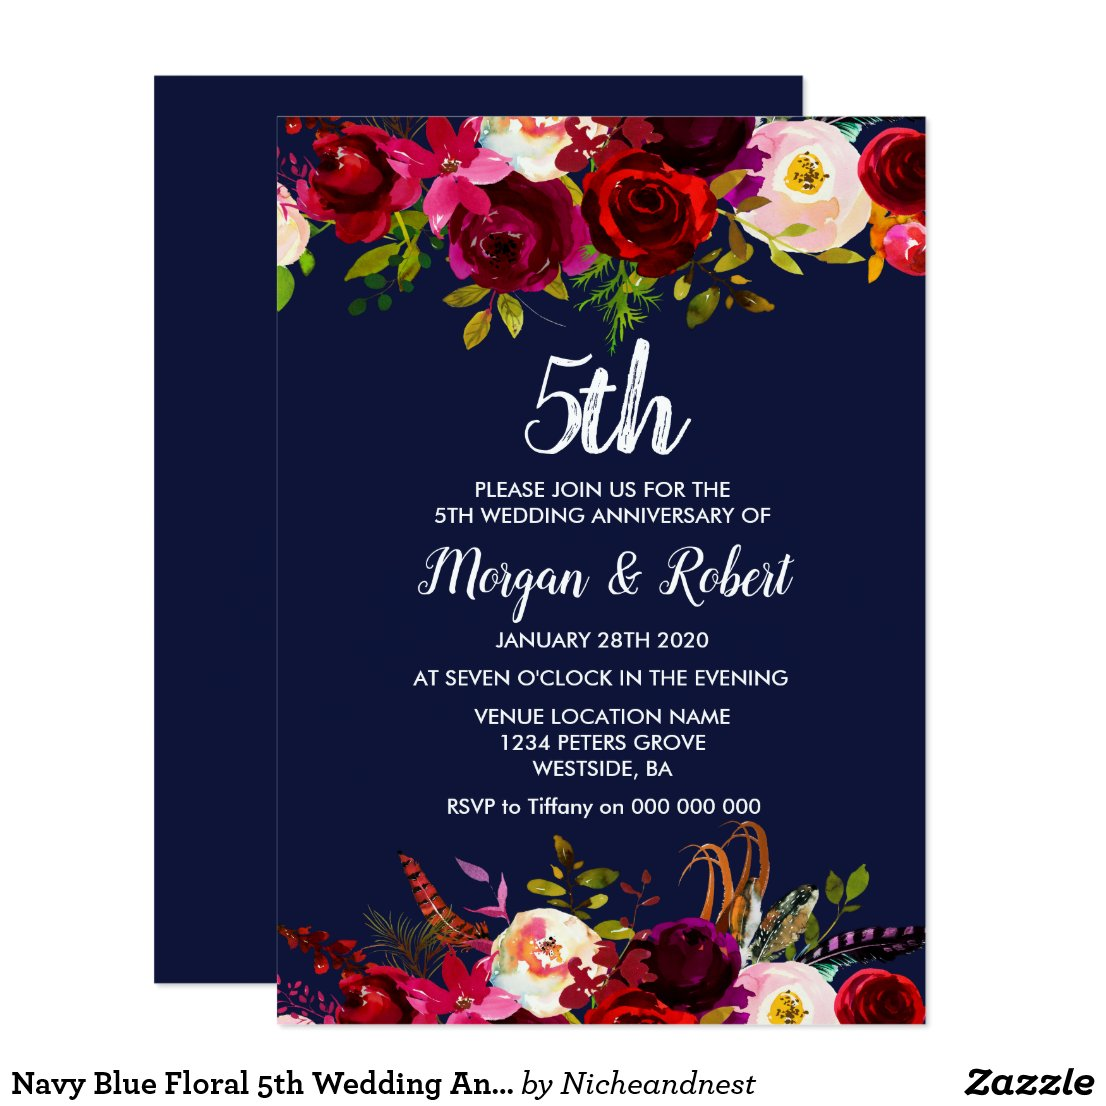 Navy Blue Floral 5th Wedding Anniversary Invite